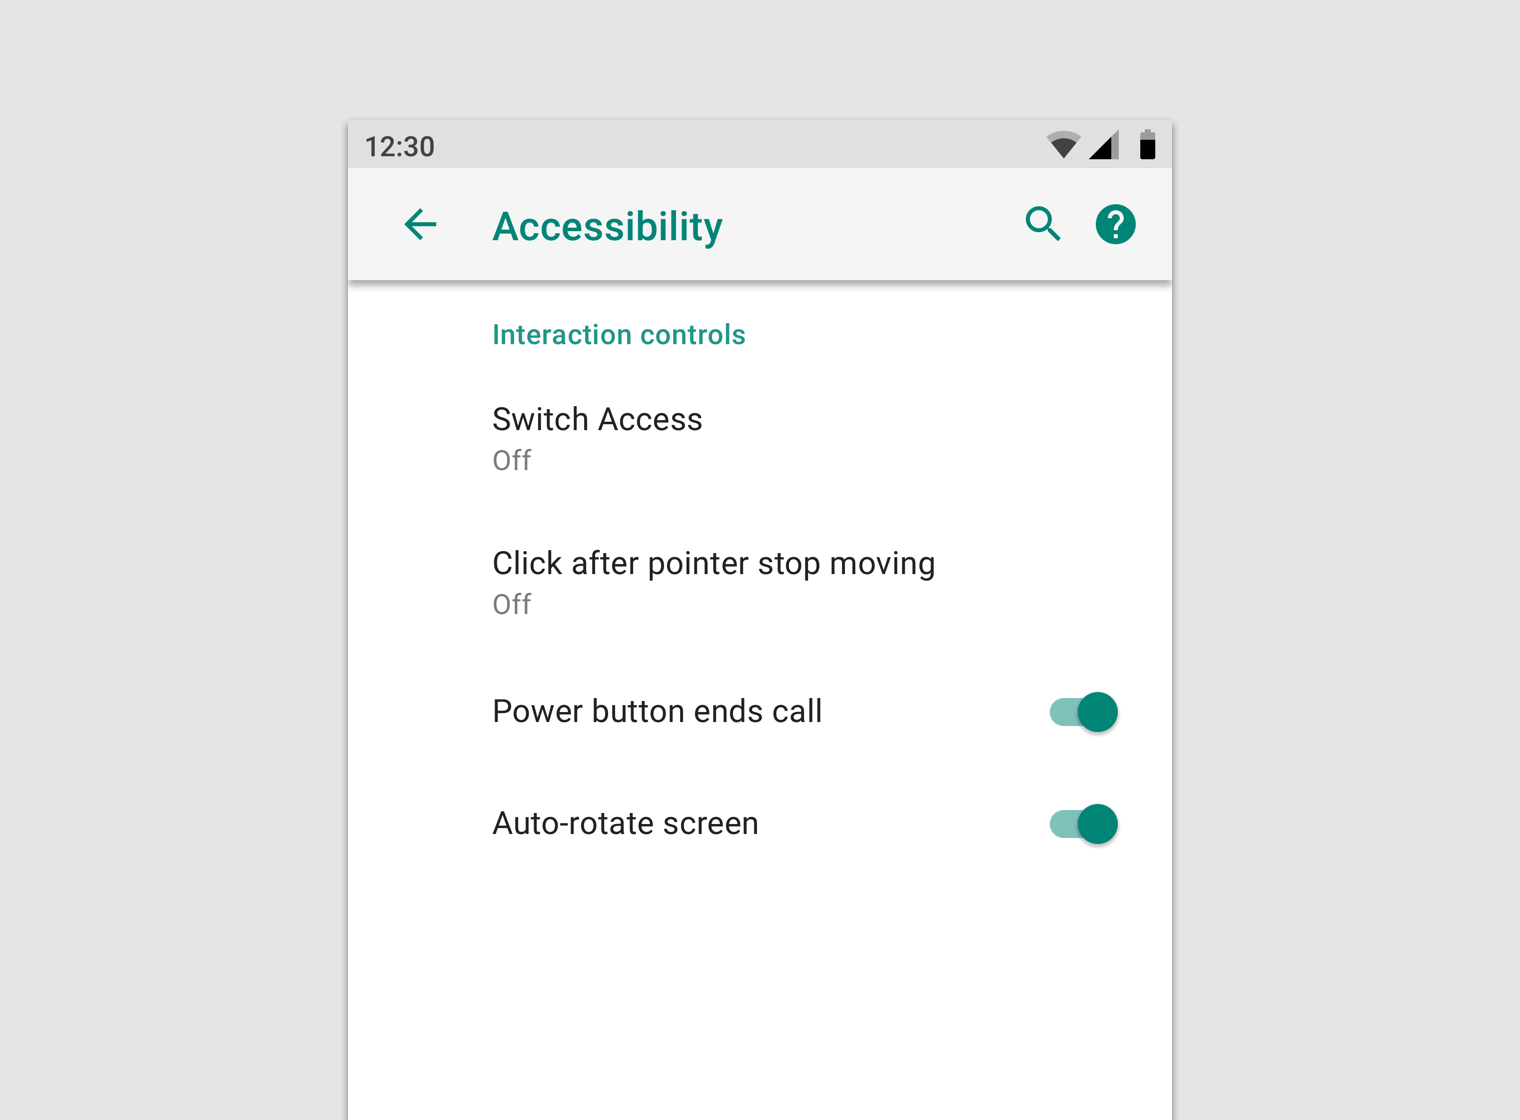 Android settings - Material Design